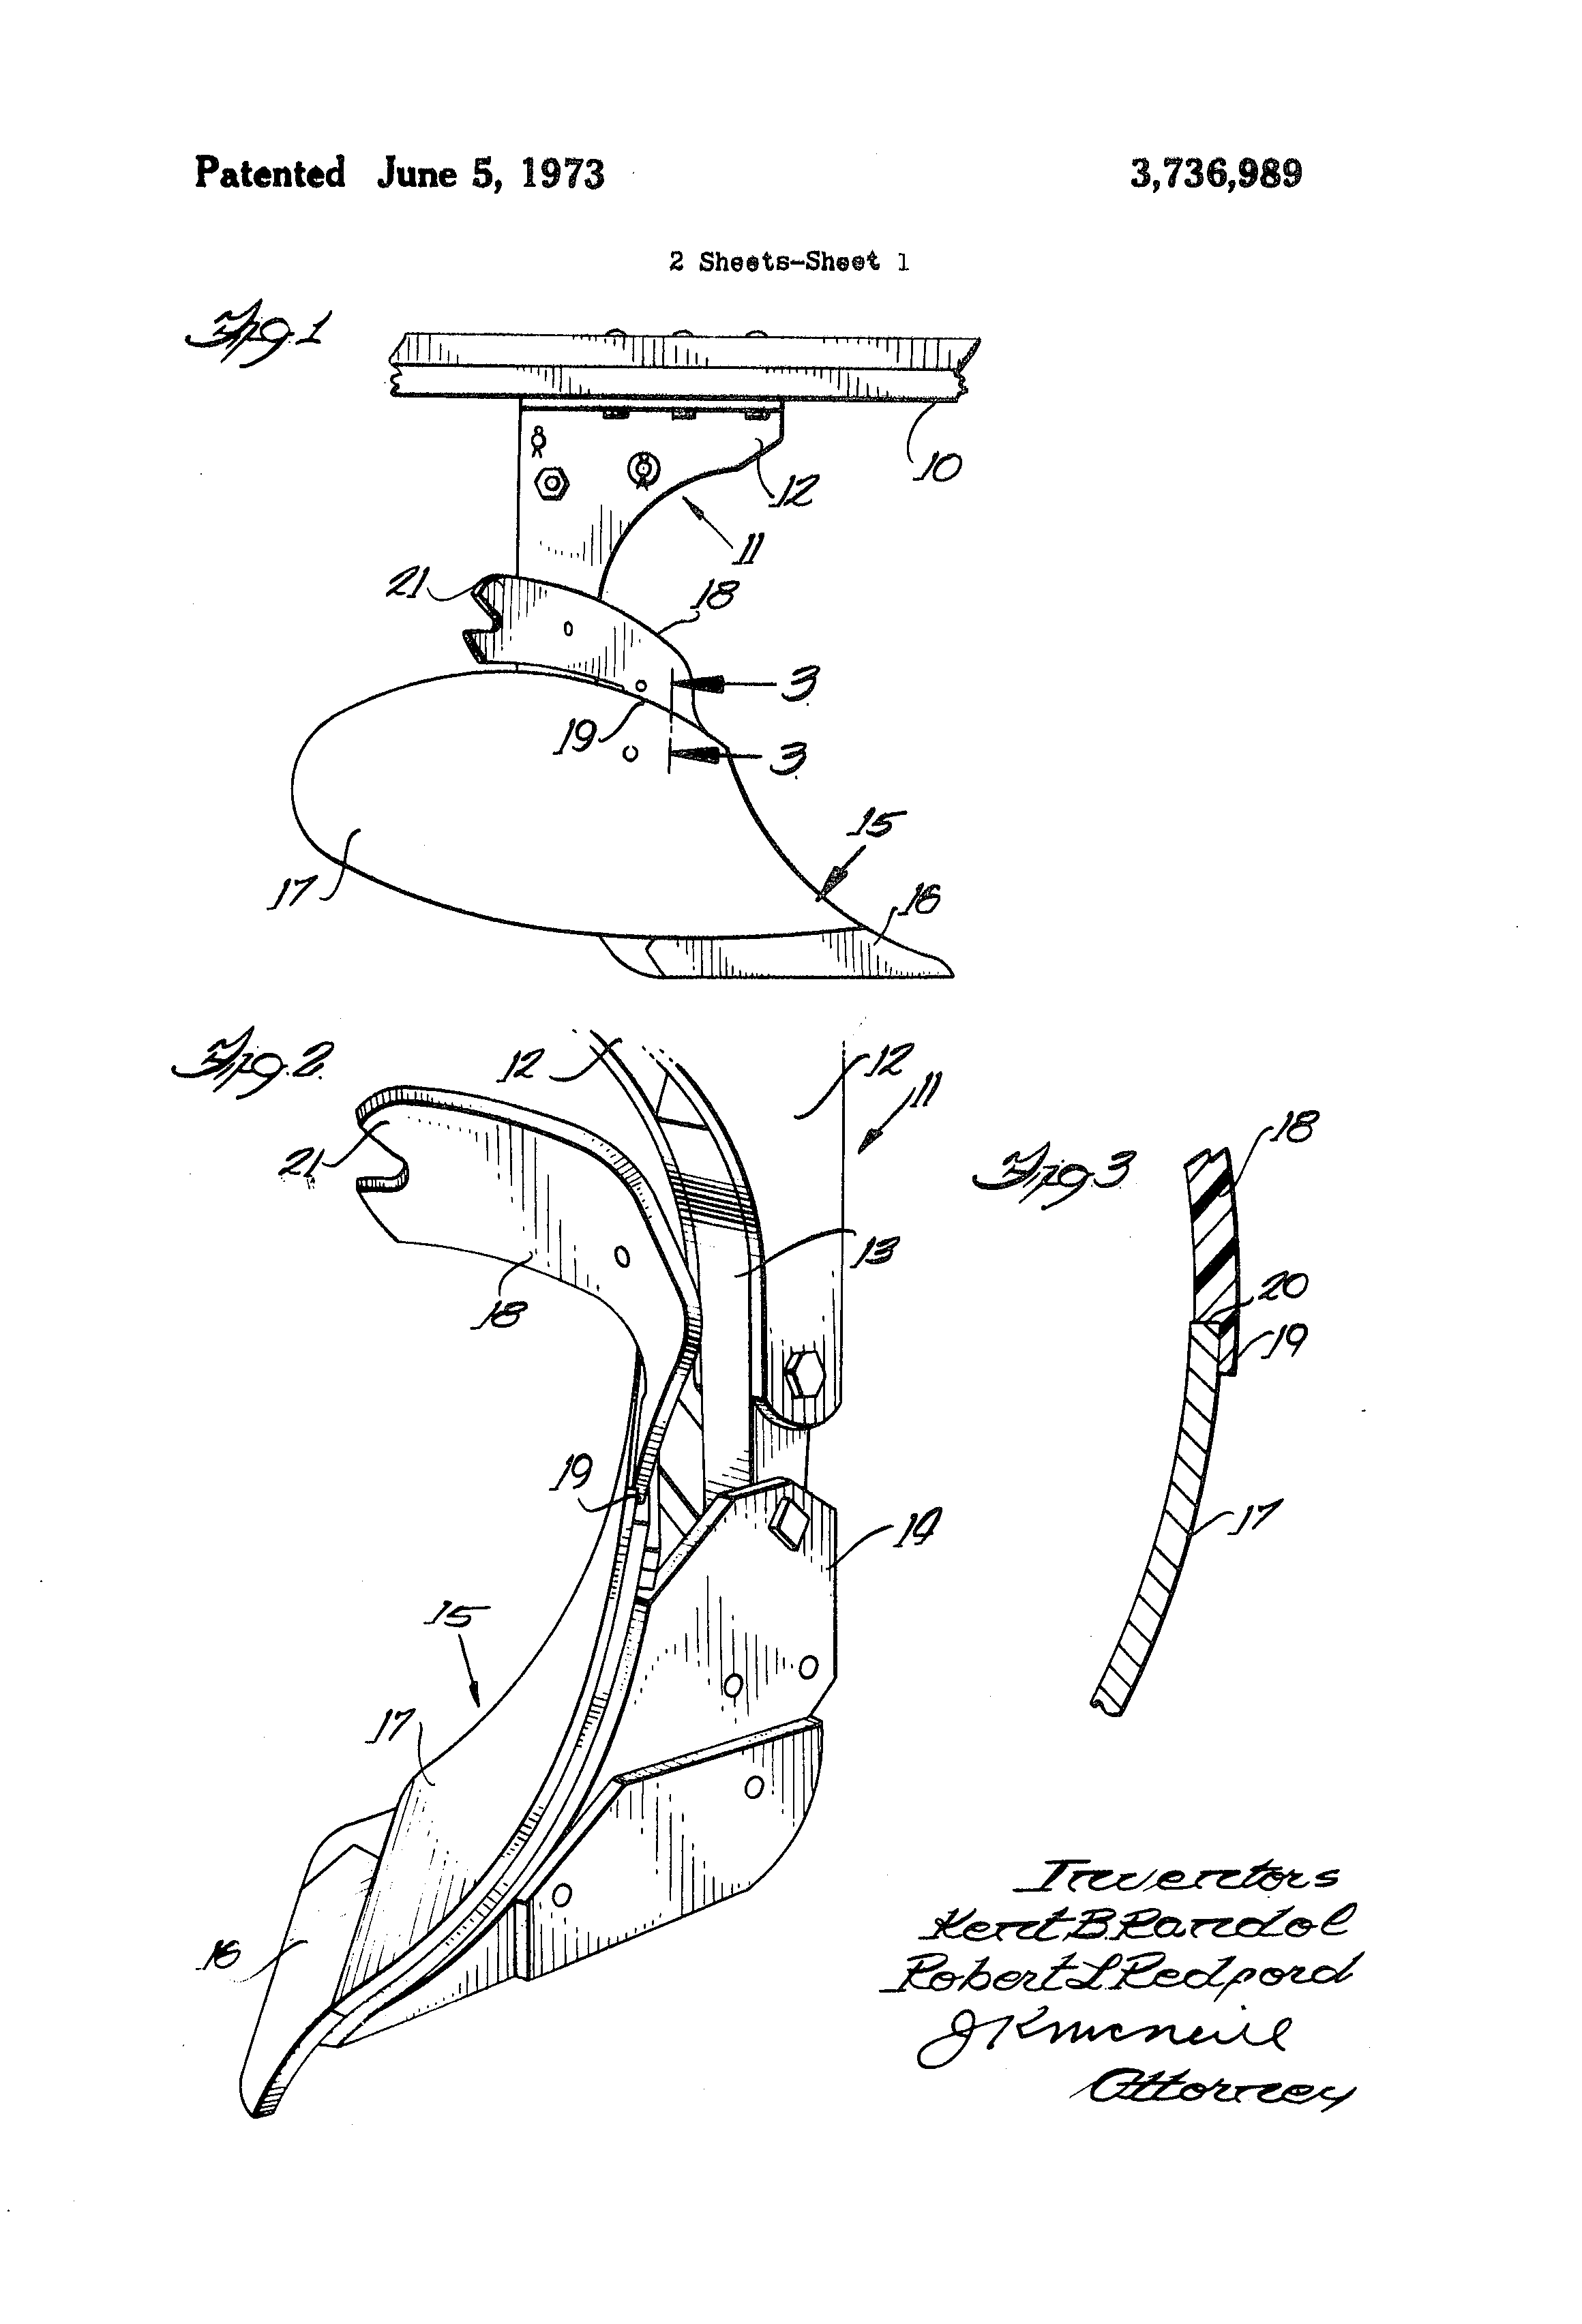 Moldboard Plow Parts : Patent us flexible plastic trash plate for a